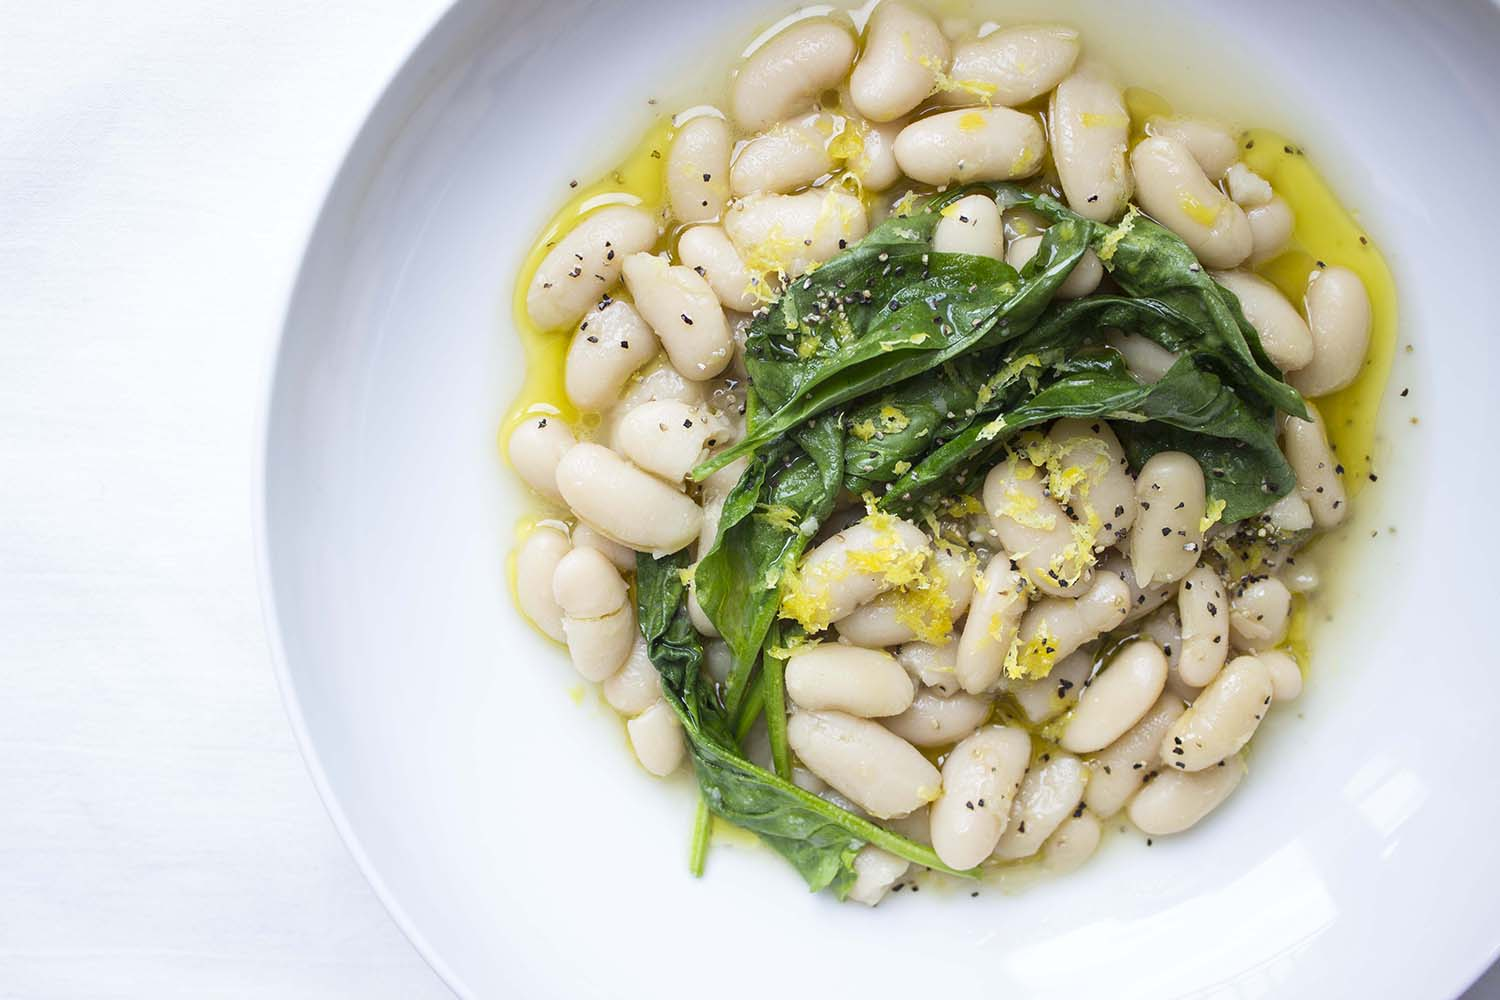 Cannellini Beans with Spinach  | Image:  Laura Messersmith